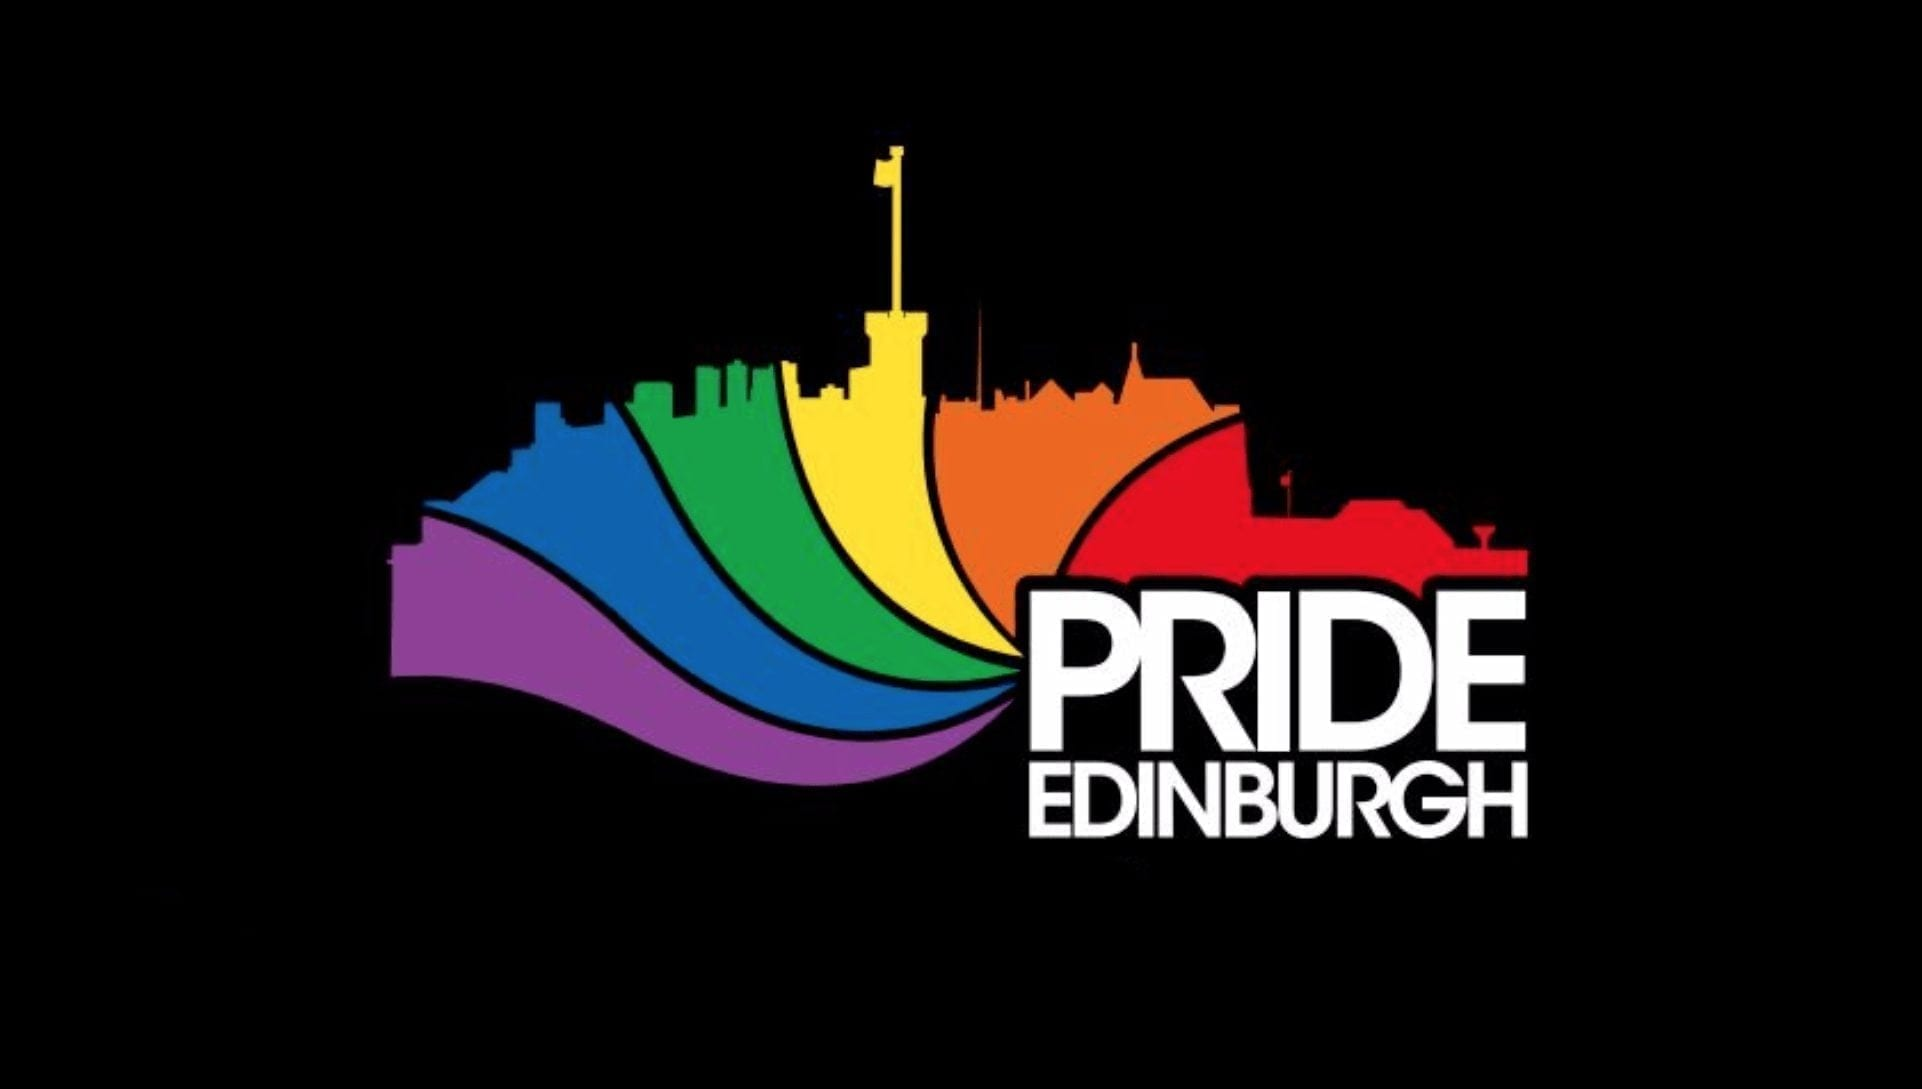 pride edinburgh returns to the capital on saturday 16th